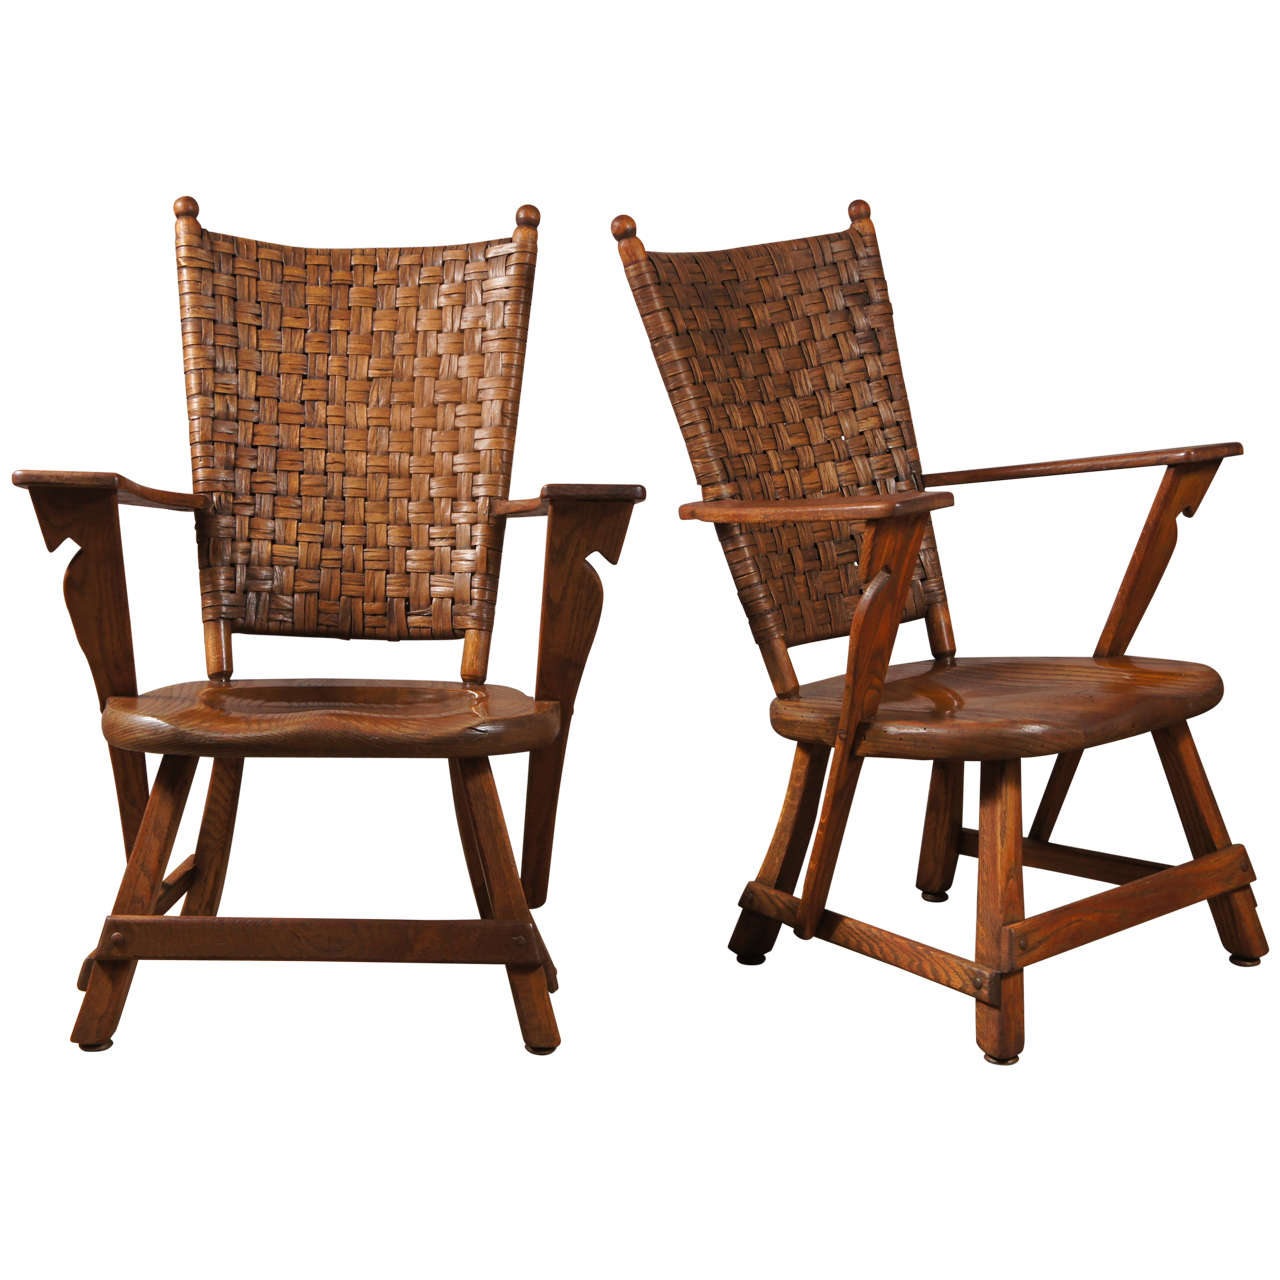 hickory chair dallas design center diy ruffled covers wedding pair old arm chairs at 1stdibs